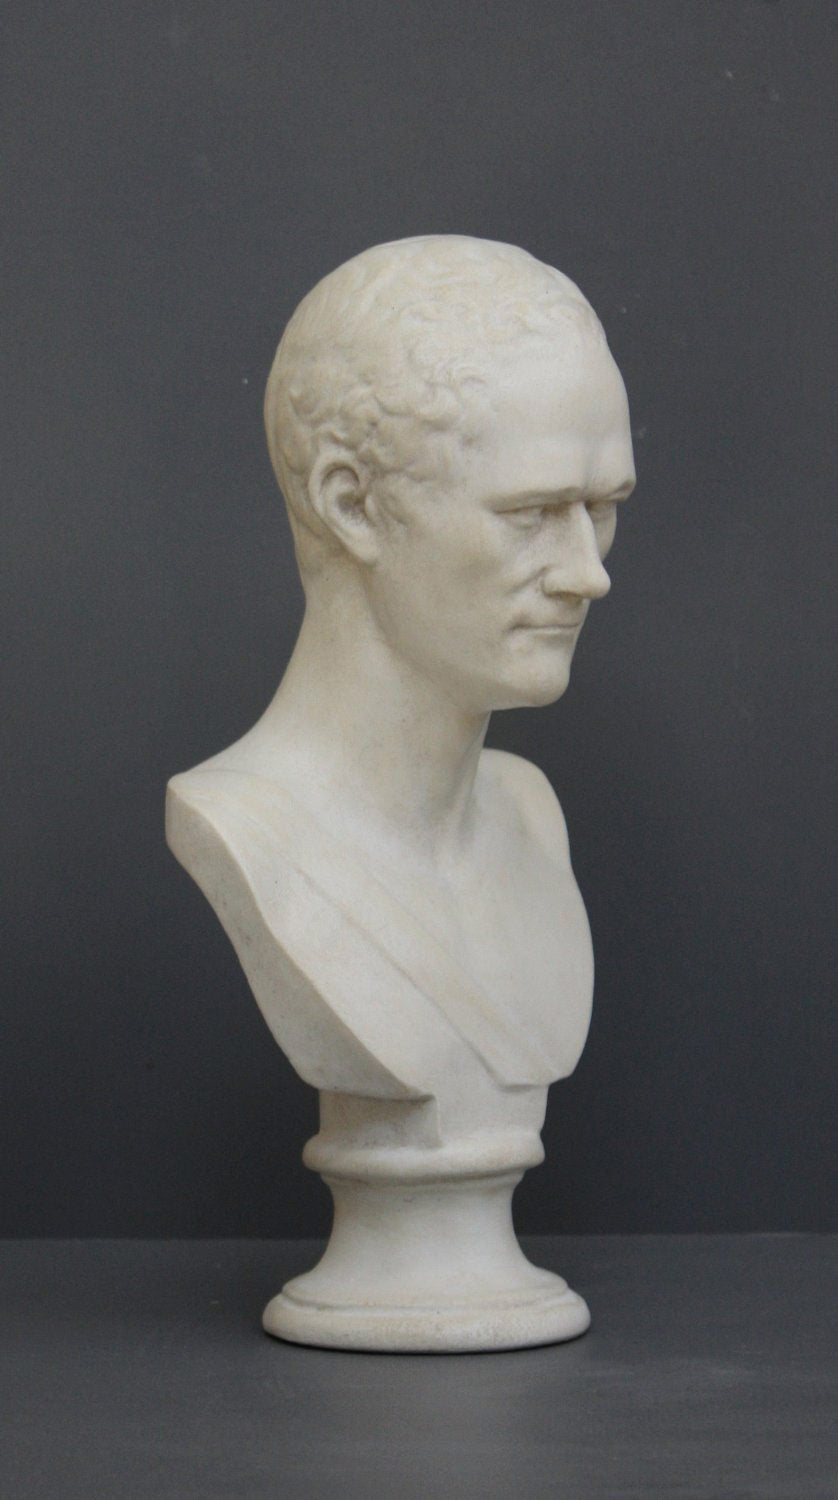 photo with gray background of plaster cast bust of Alexander Hamilton